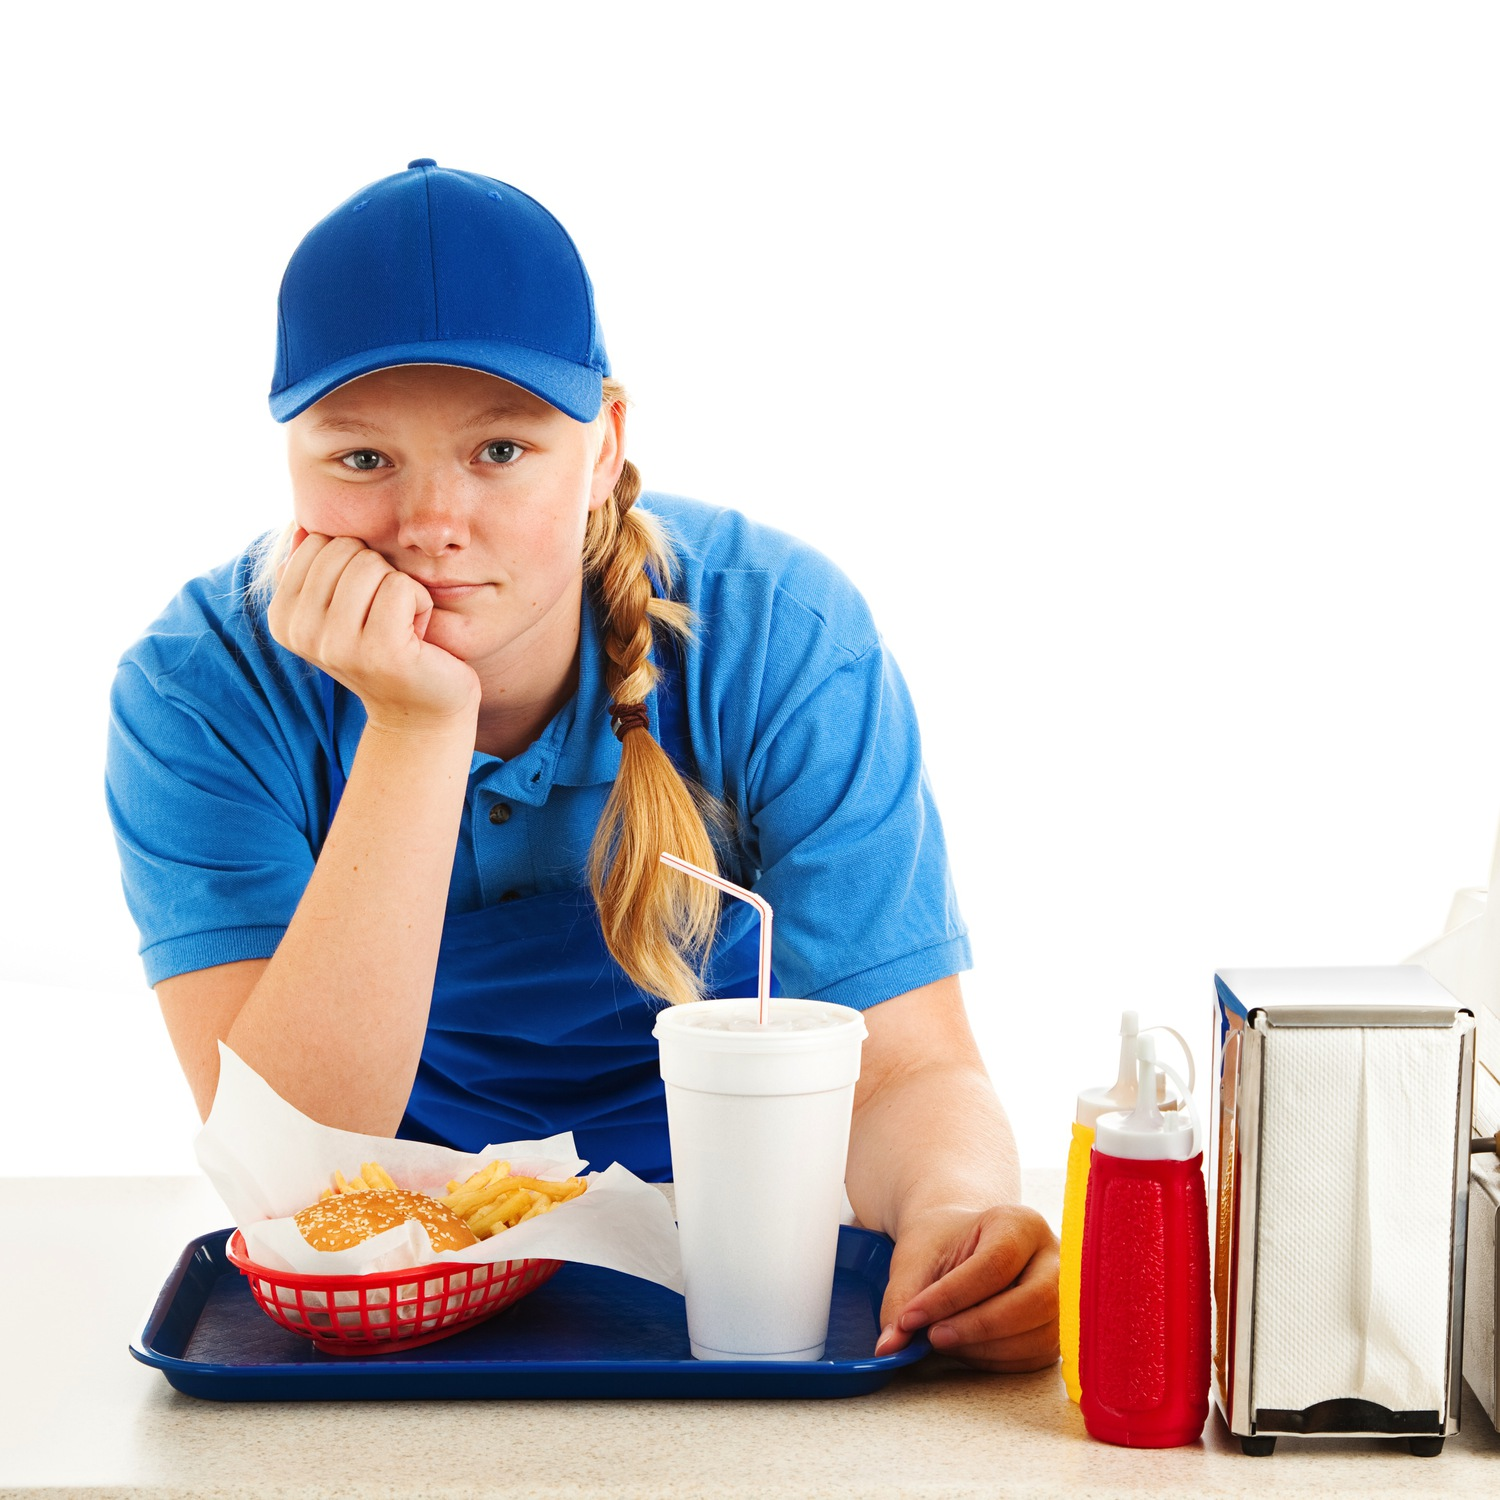 Unhappy Employee At Fast Food Restaurant